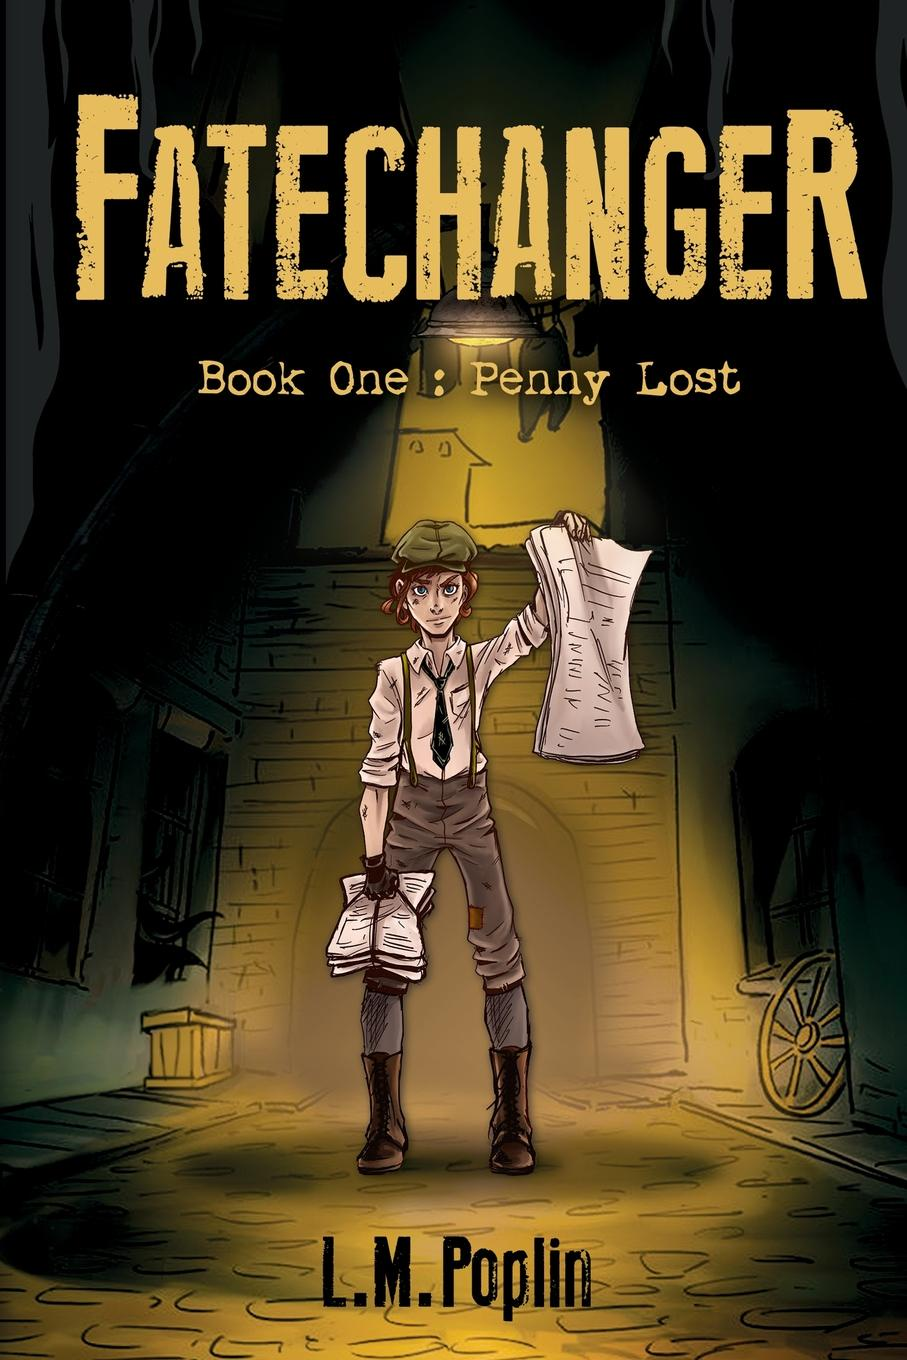 Fatechanger.  Penny Lost But when Penn is robbed, and the pickpockets kidnap the head newsboy...